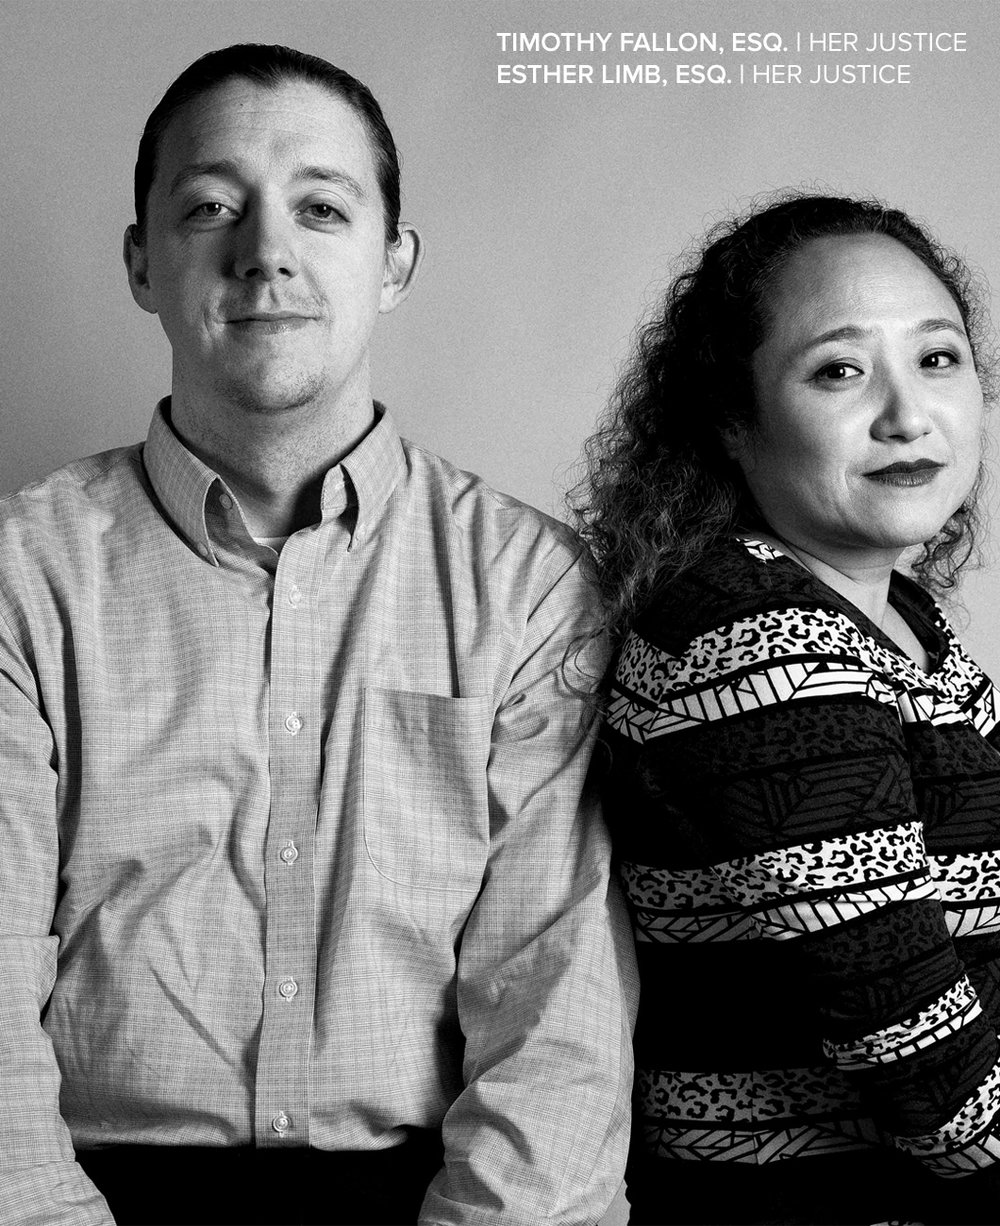 TIMOTHY FALLON AND ESTHER LIMB  work with Her Justice, a partner organization that stands with women living in poverty in New York City by recruiting and mentoring volunteer lawyers to provide free legal help. Every woman we serve needs legal counsel, and we're thankful to partner with the best. These stalwart attorneys guide survivors every step of the way, including applying for T Visas, which provide immigration relief for survivors of trafficking.